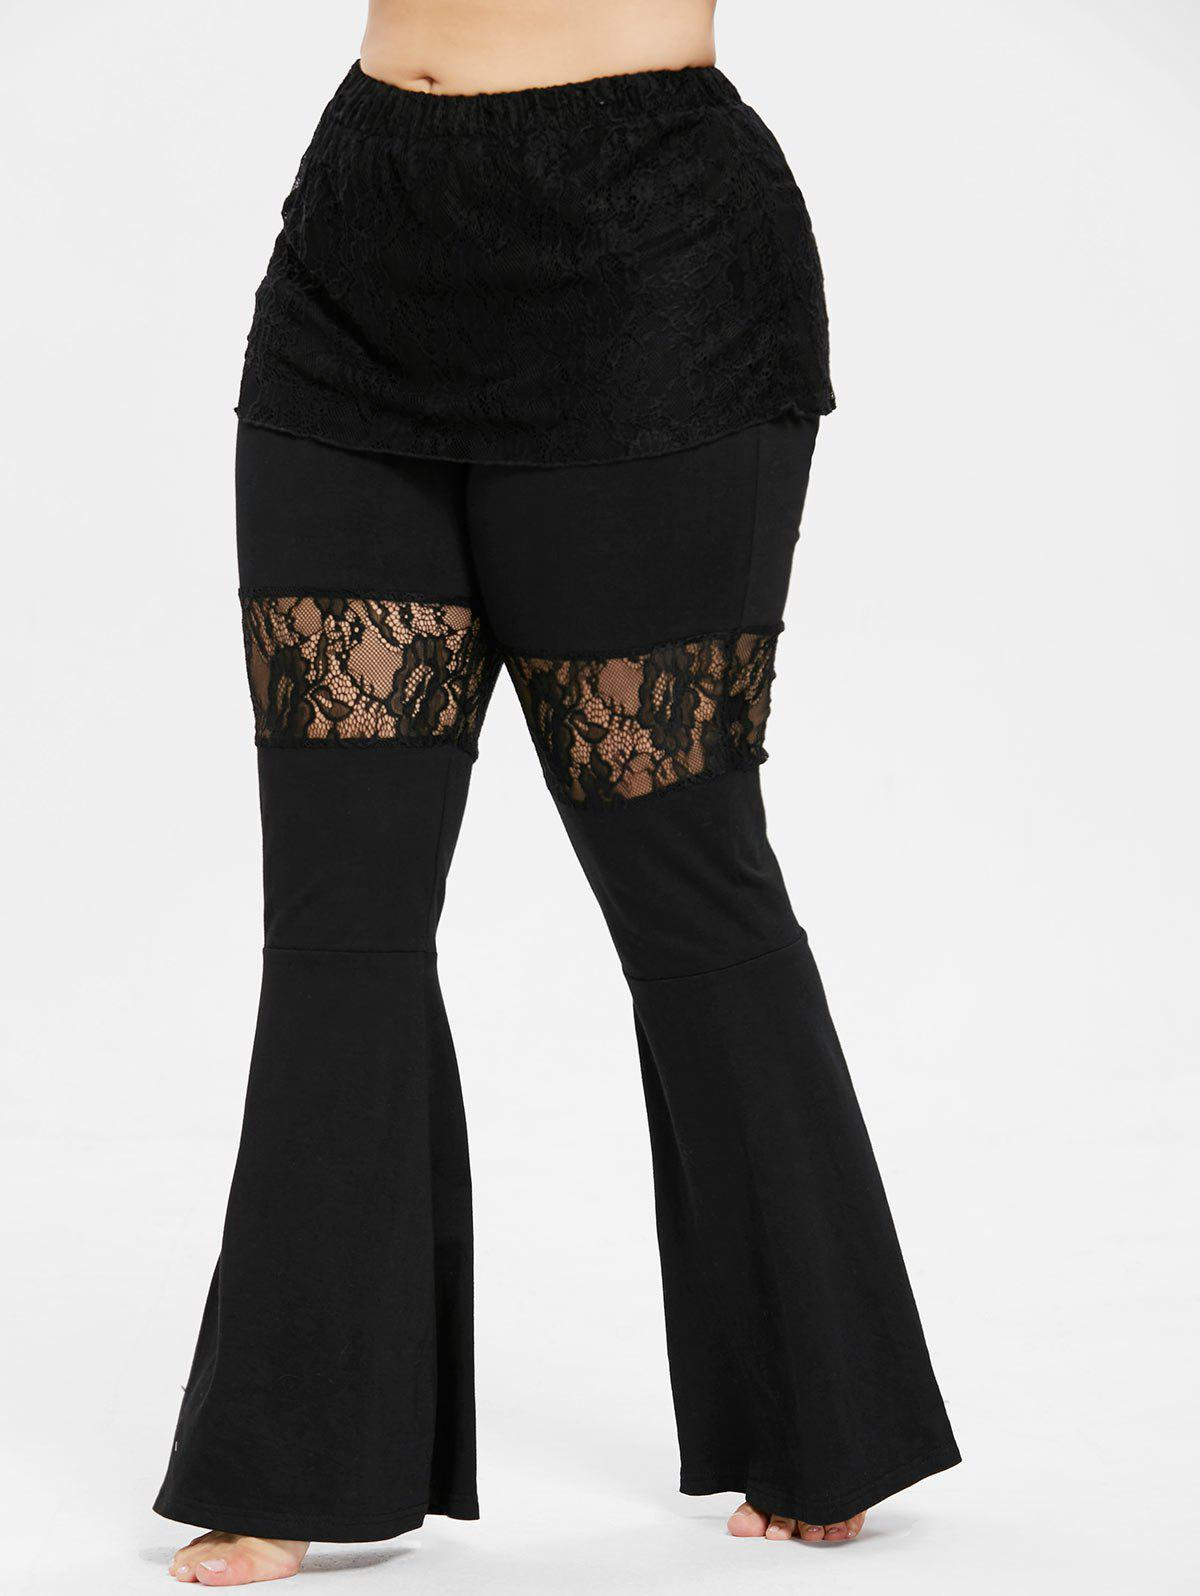 Unique Plus Size Lace Skirted Flare Pants